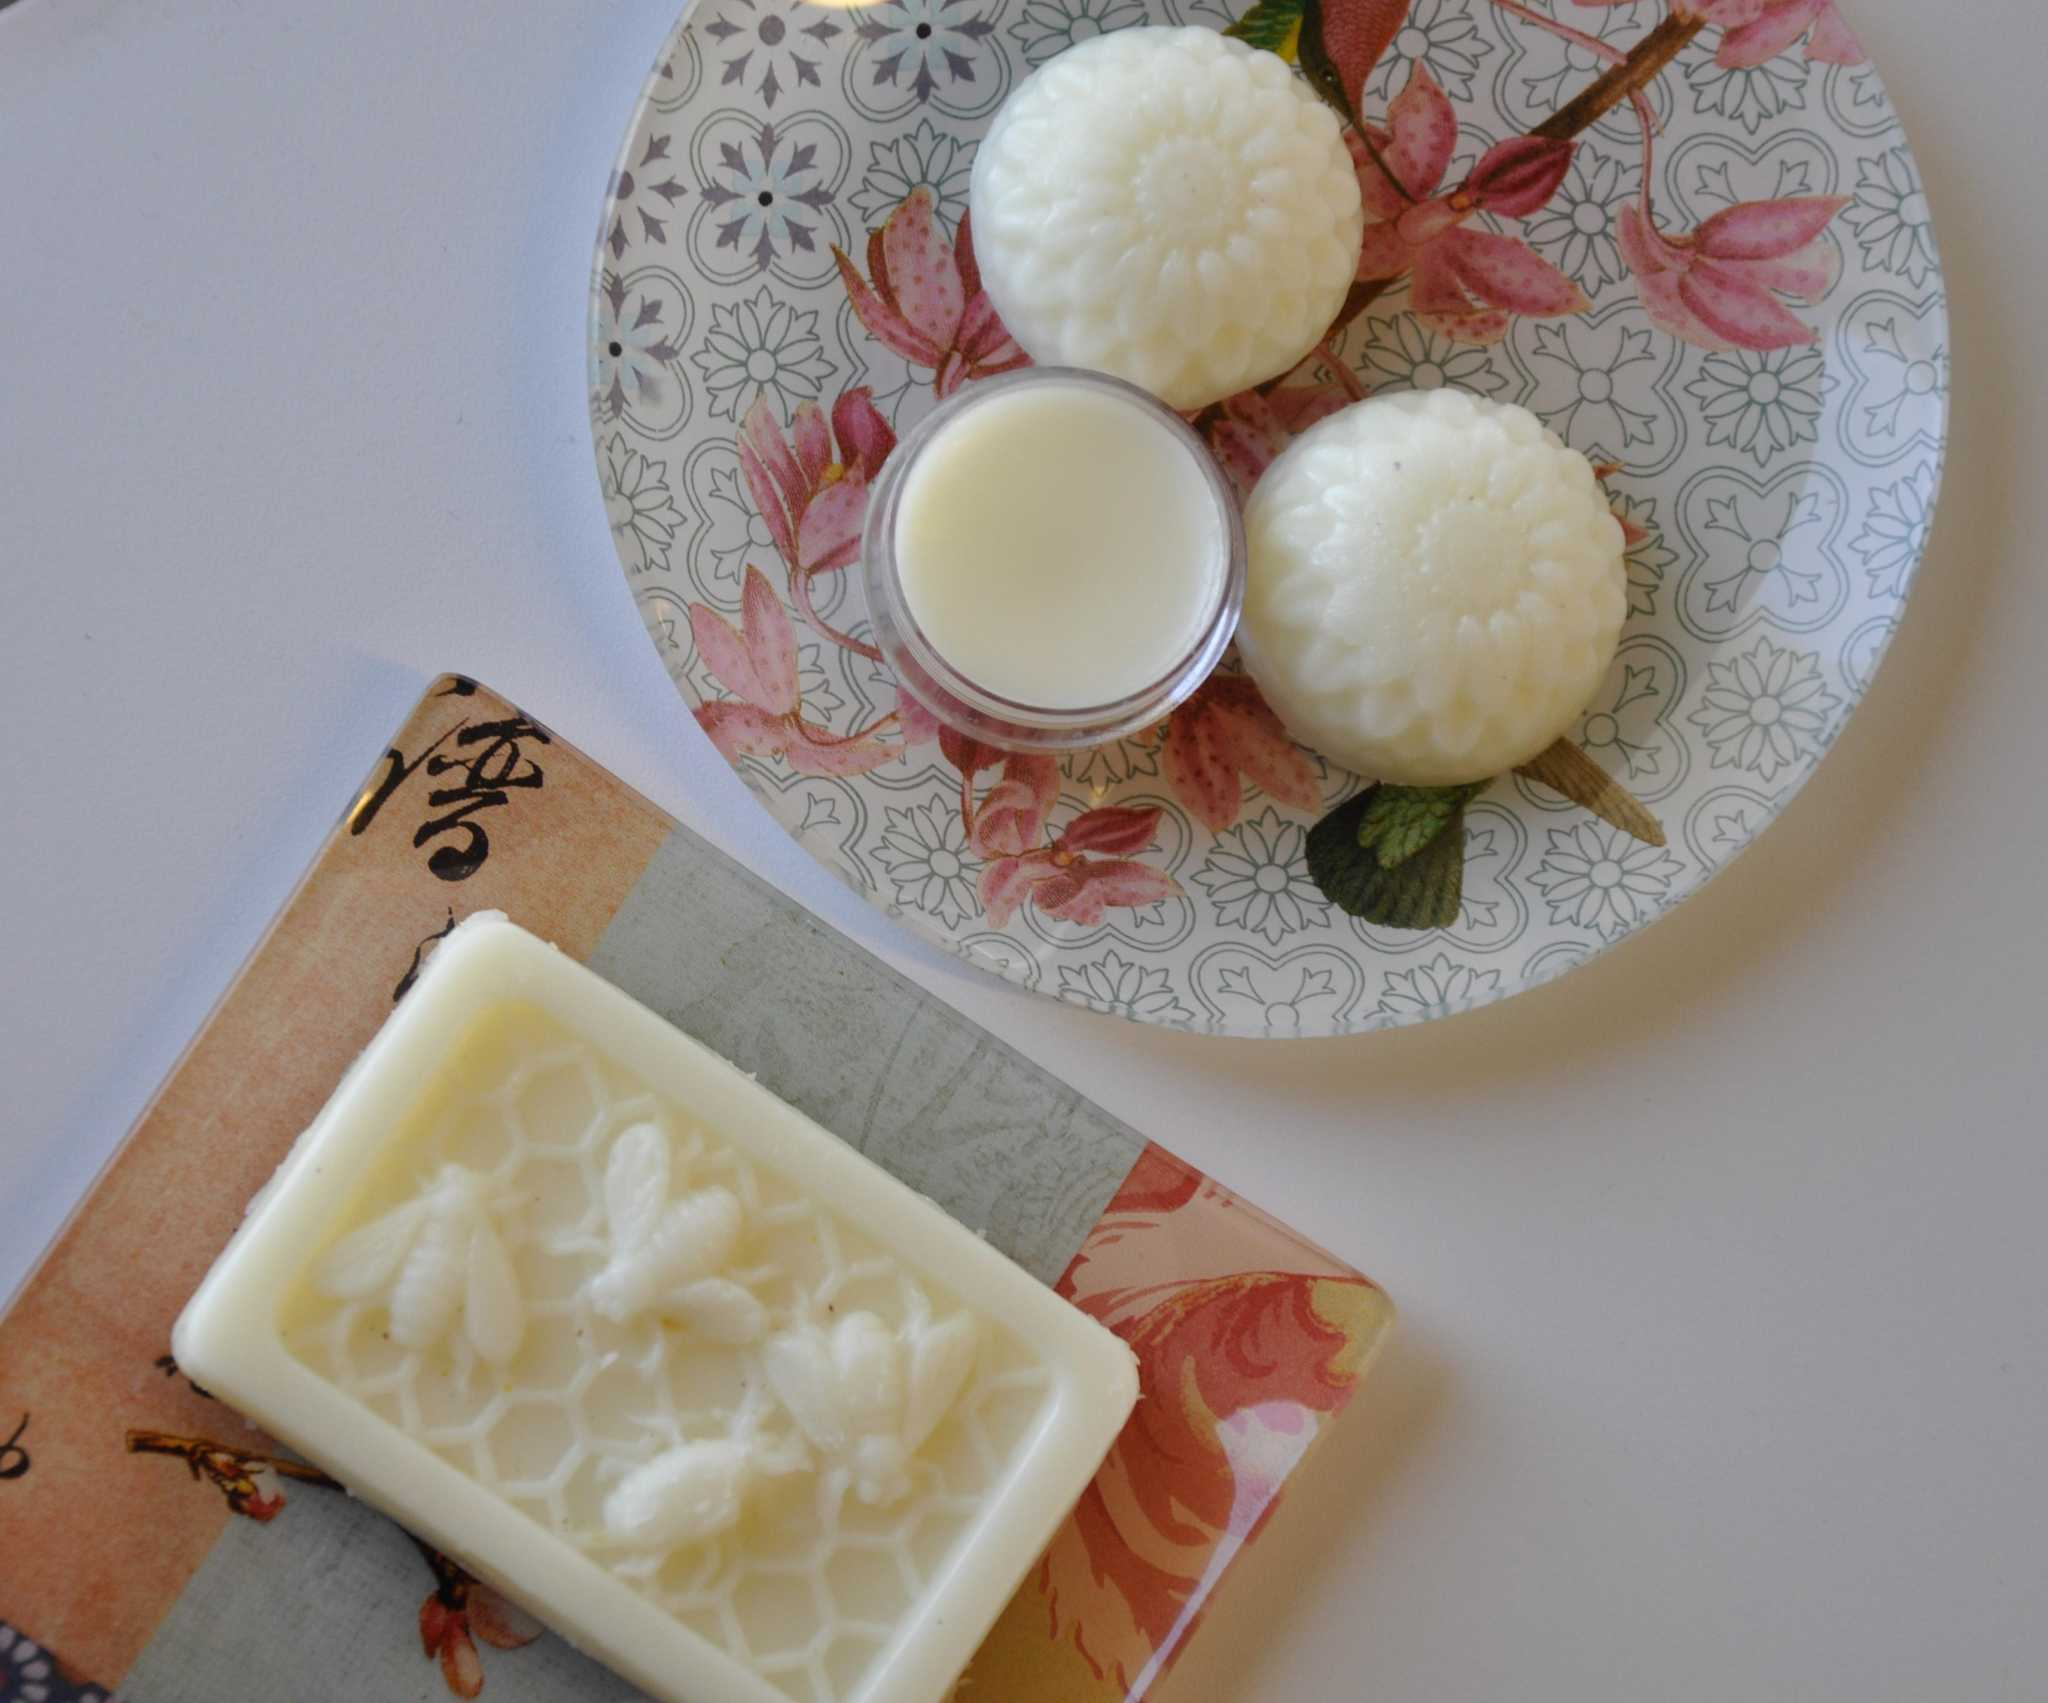 DIY project: Make your own moisturizer